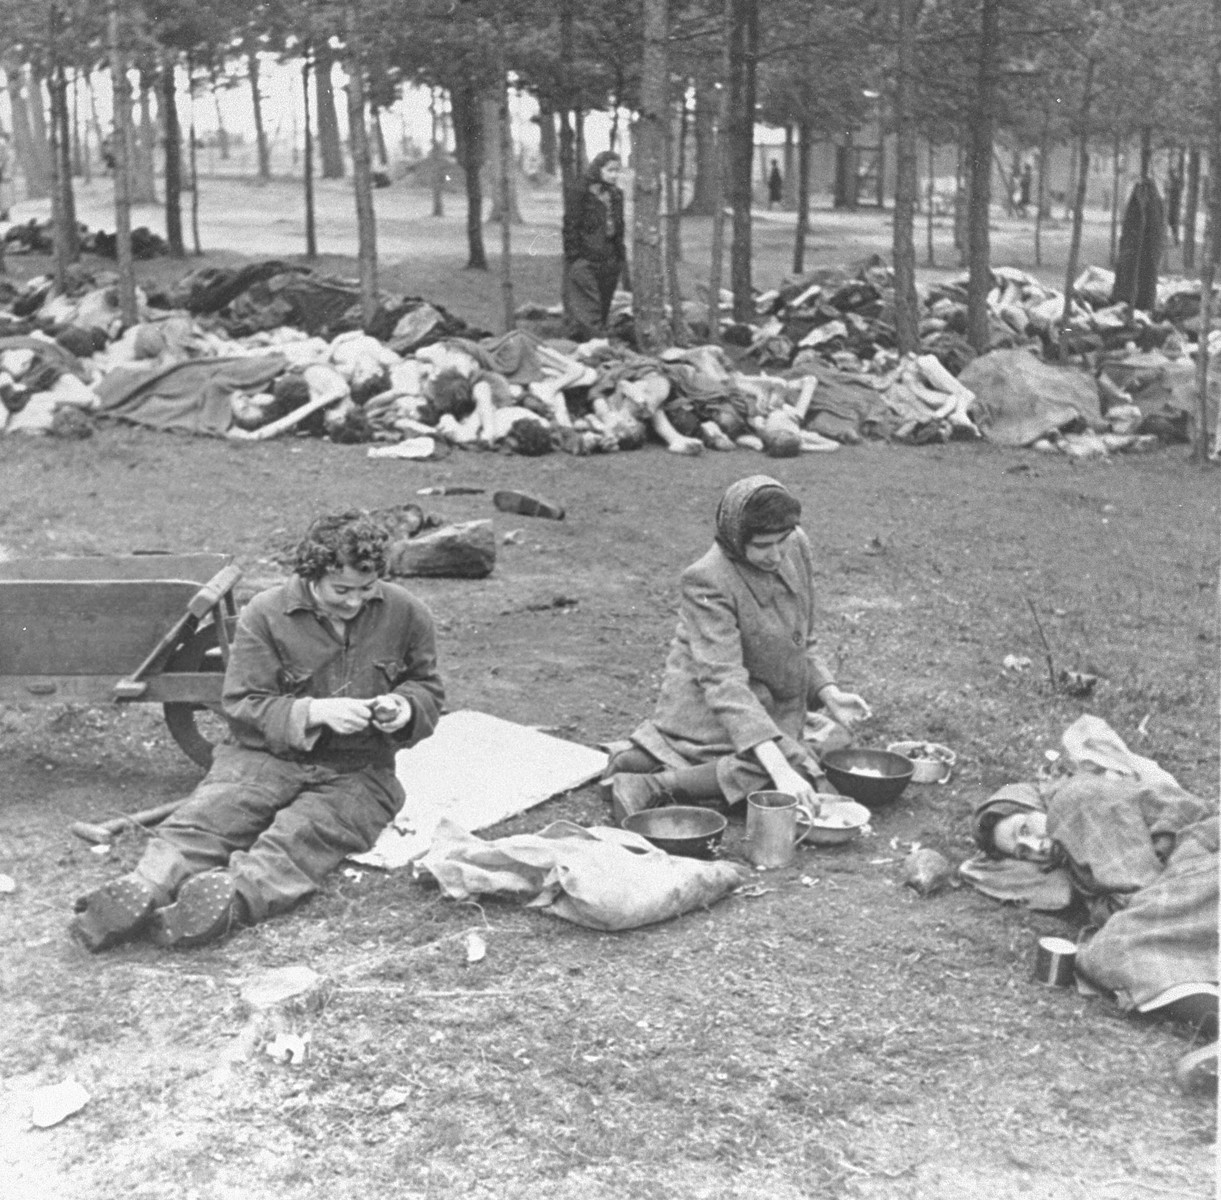 """Survivors in Bergen-Belsen peel potatoes while behind them lie the corpses of prisoners who died before the liberation of the camp.  The original caption reads: """"Women peeling potatoes in front of piles of dead bodies."""""""